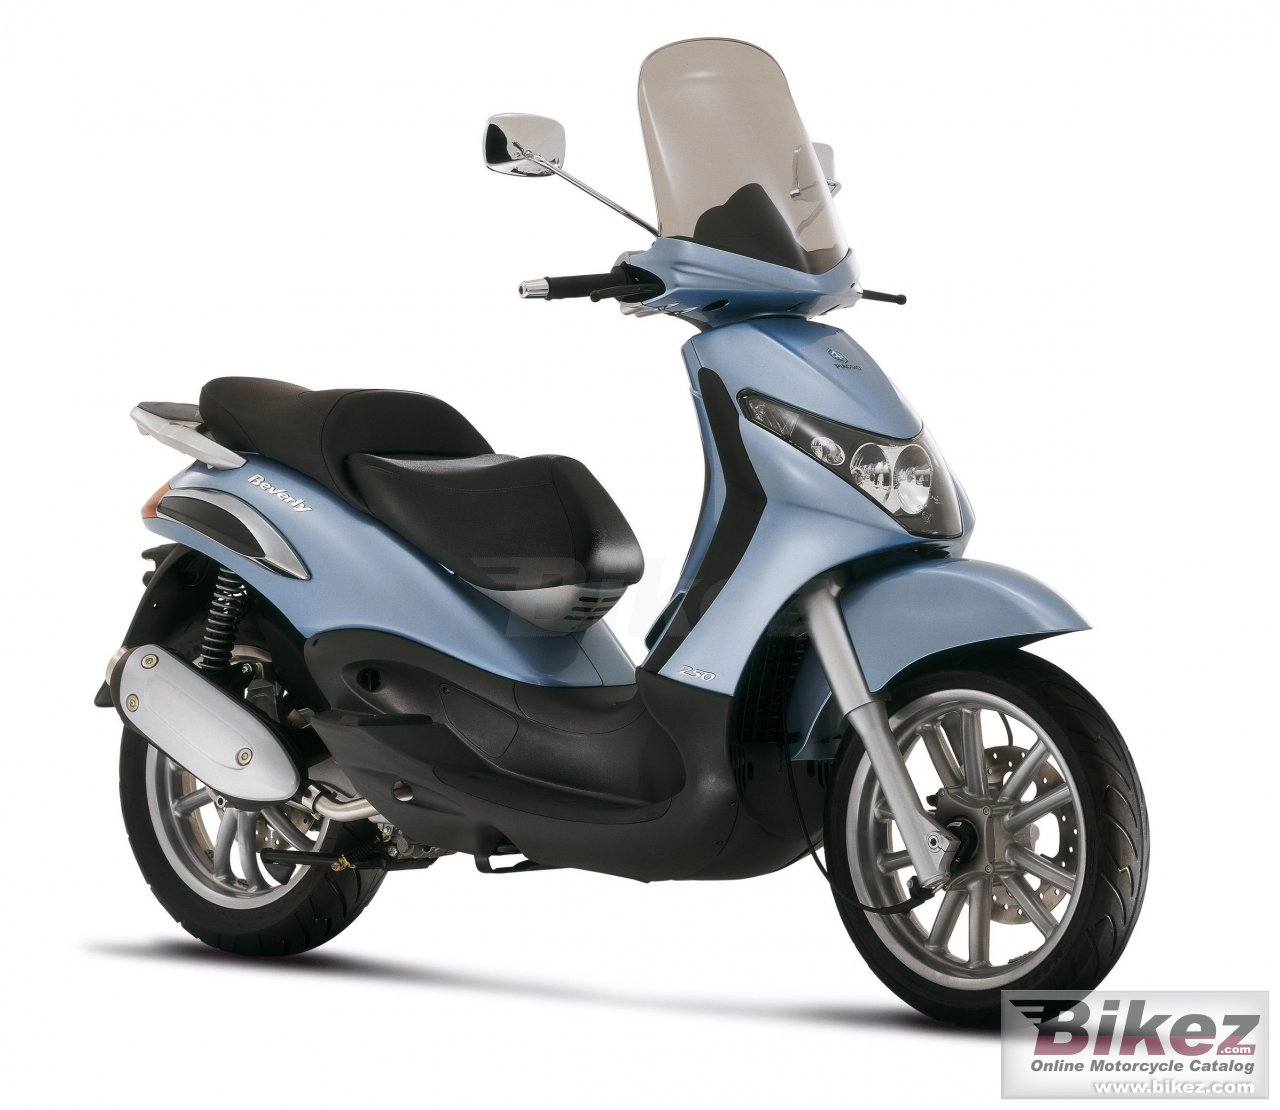 Big Piaggio beverly s 250 picture and wallpaper from Bikez.com